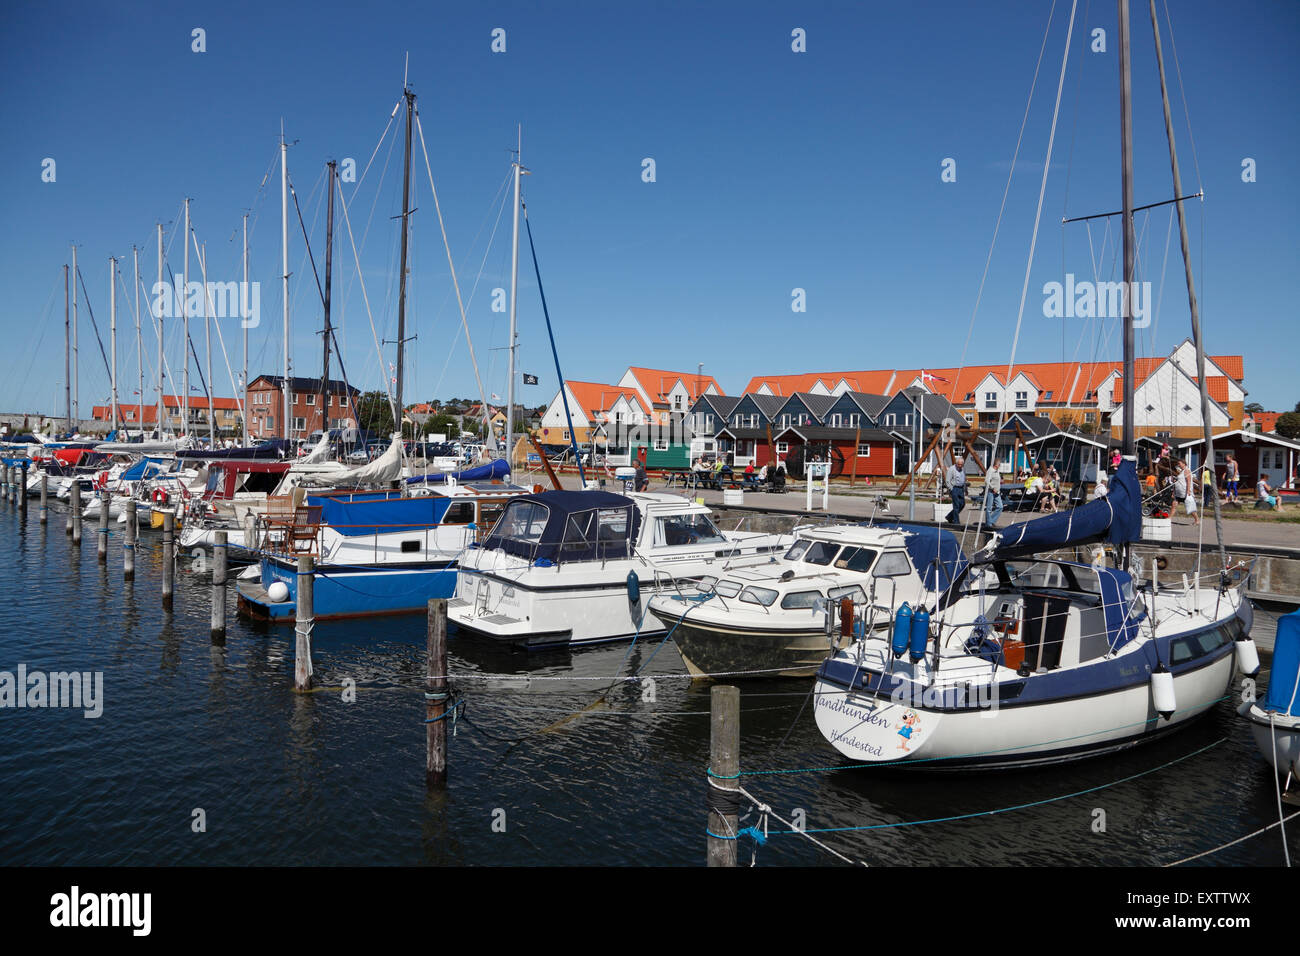 The marina in Hundested Harbour on a sunny summer's day with a blue sky - Stock Image